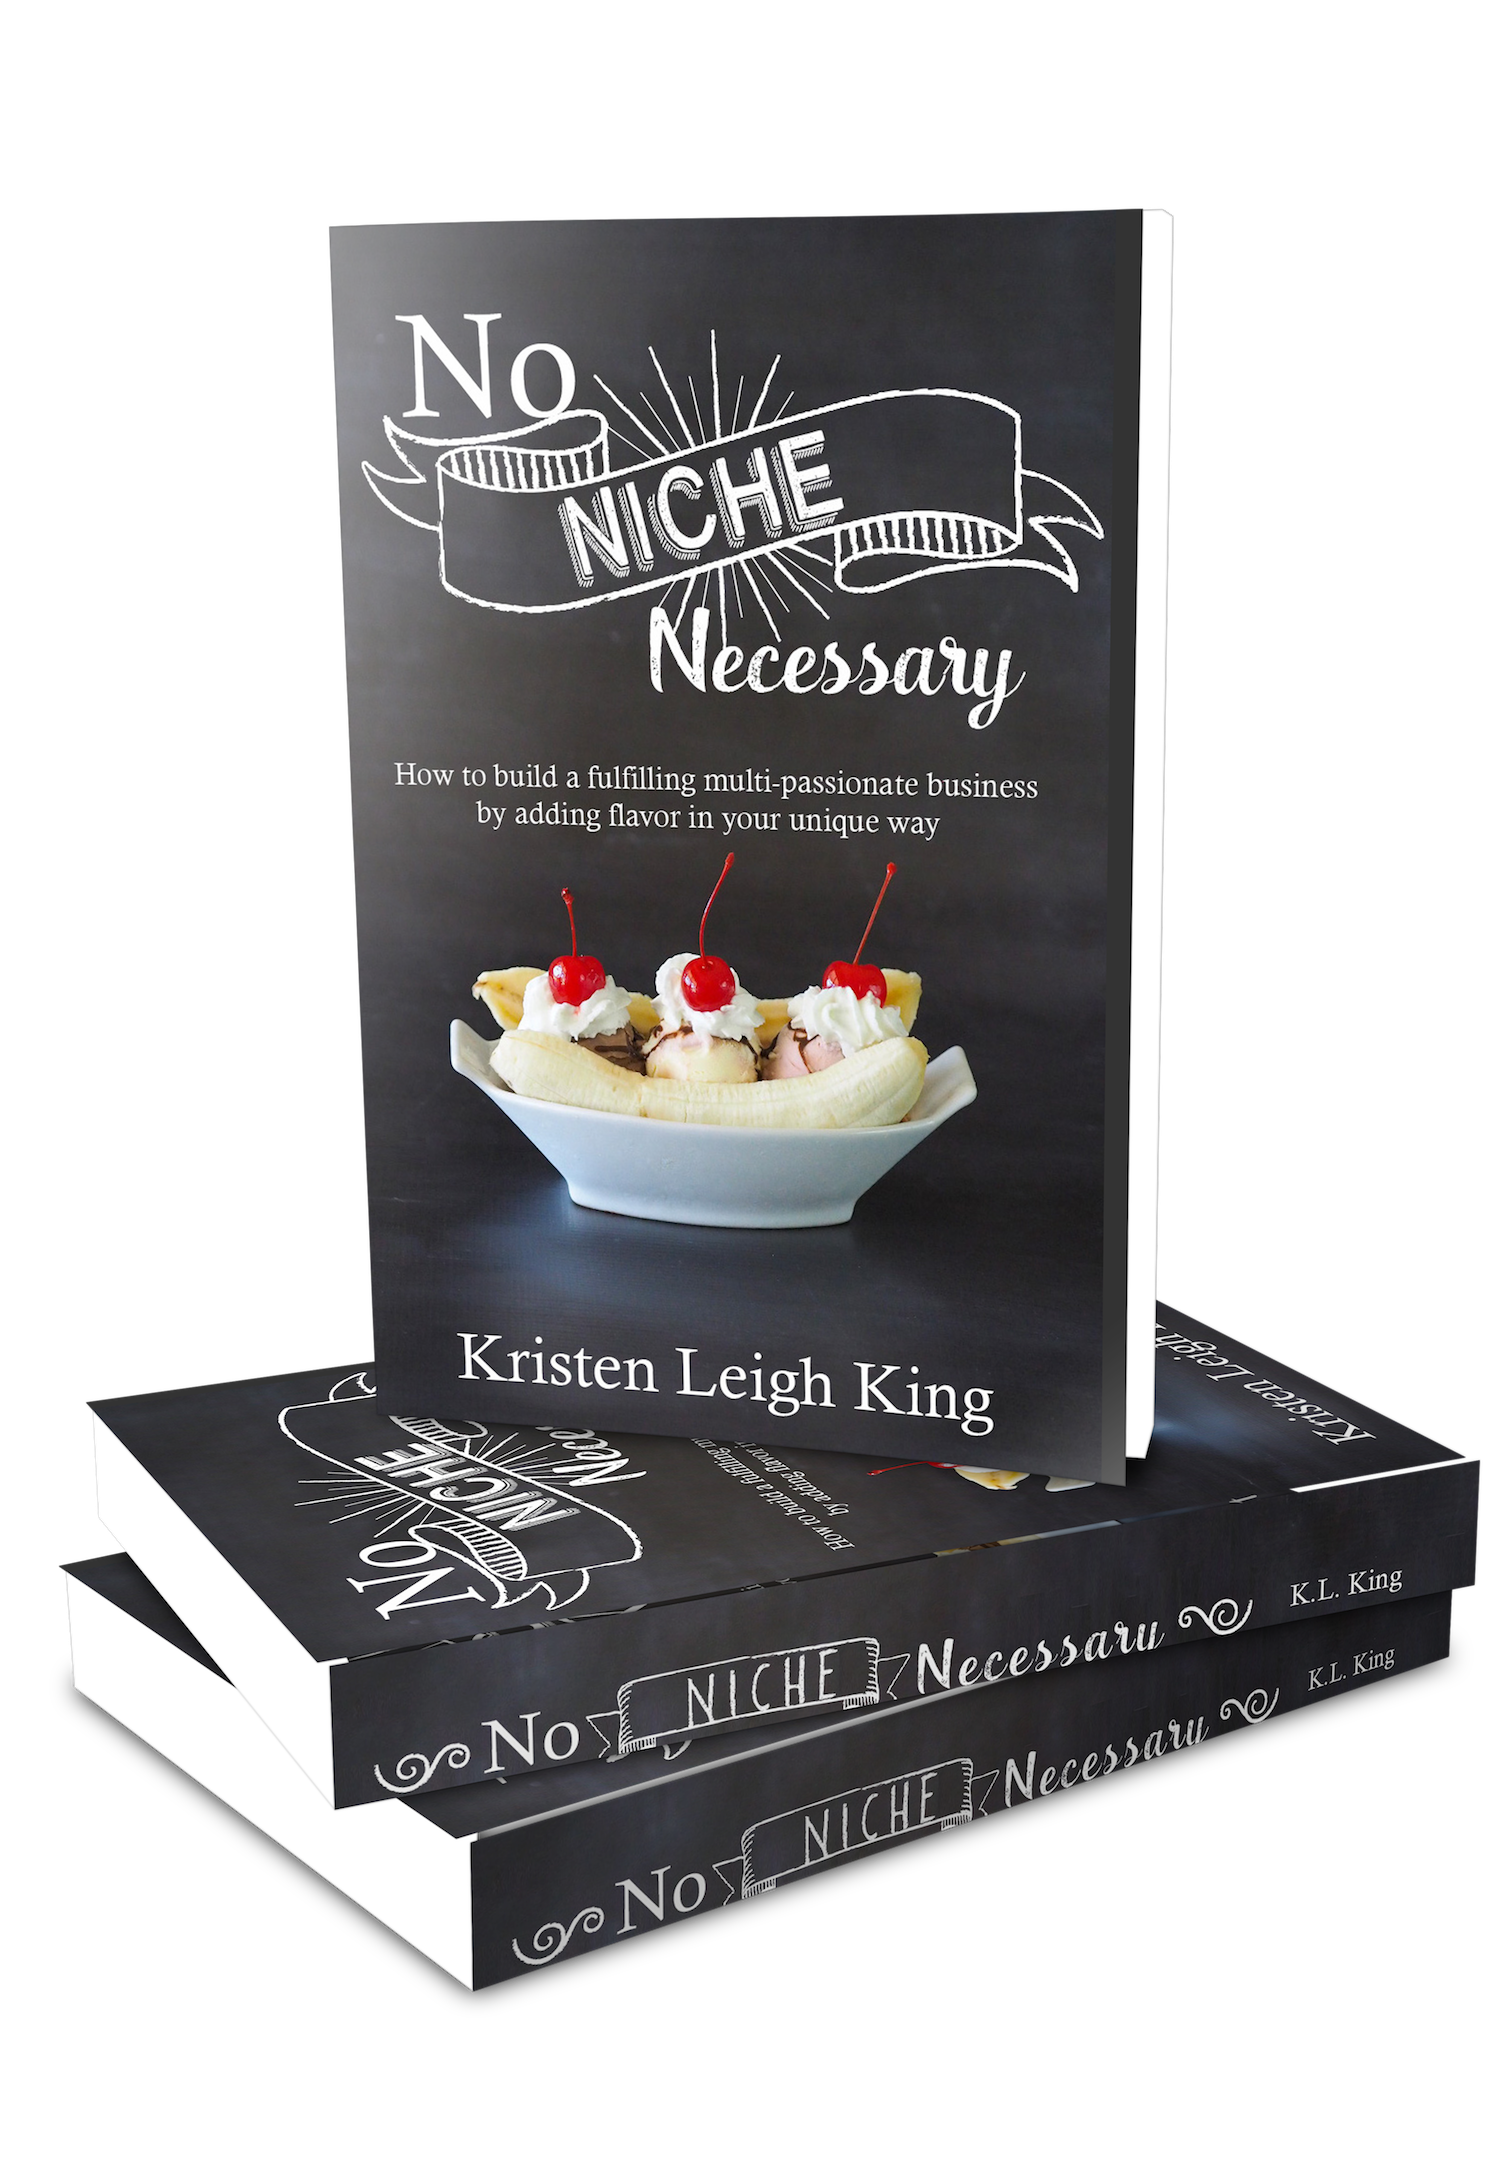 No Niche Necessary book for how to build a fulfilling multi-passionate business